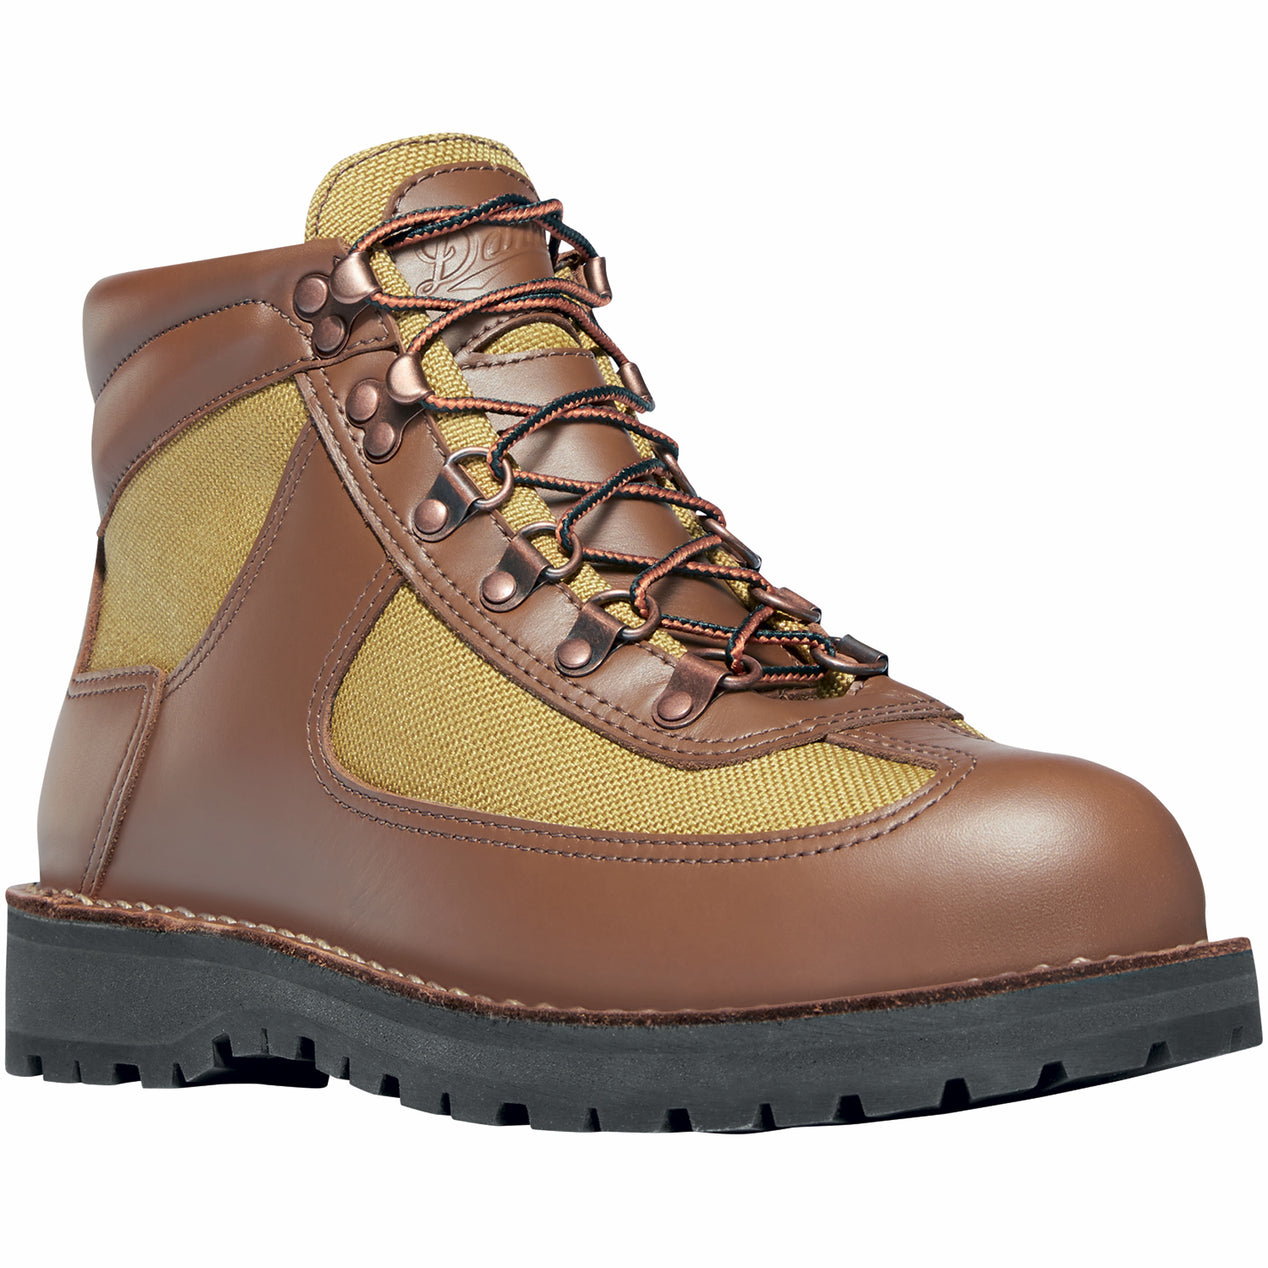 45e65f427 Danner Feather Light Hiking Boots - Men s